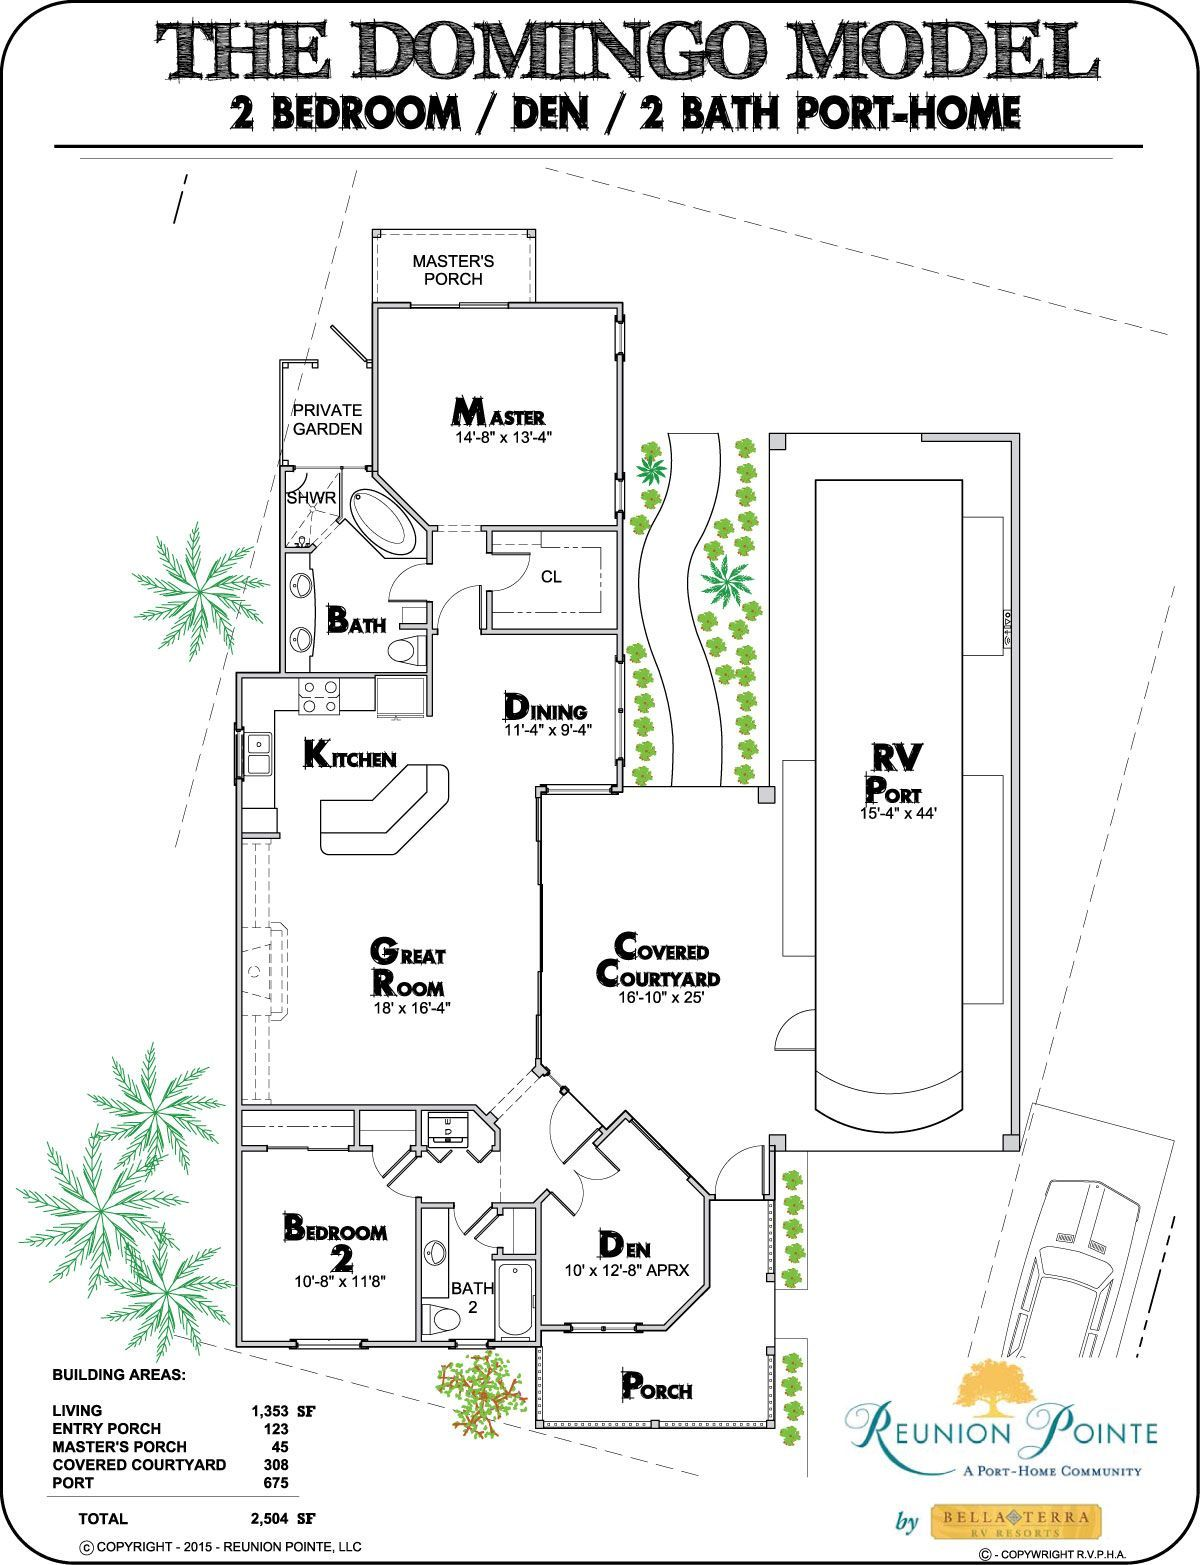 The Domingo Rv Port Home By Reunion Pointe By Bella Terra Garage House Plans Floor Plans House Floor Plans